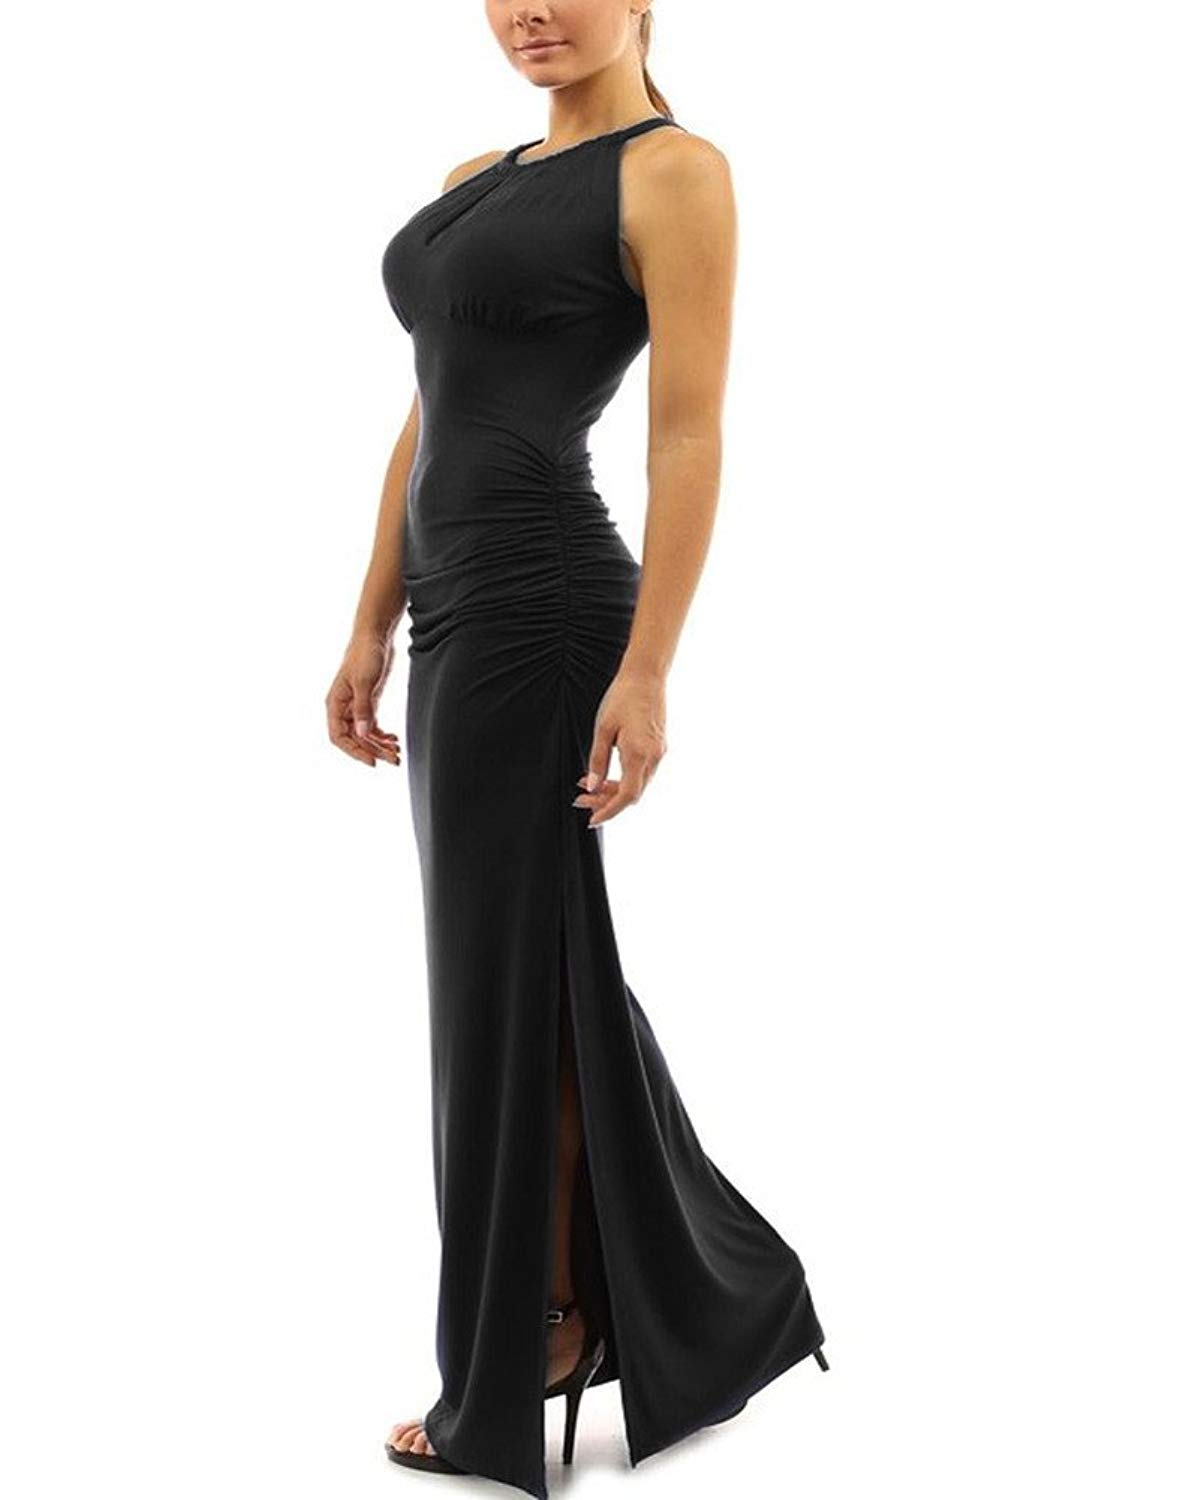 6623db1f3631 Get Quotations · Huafeiwude Womens Sexy Slit Long Maxi Bodycon Dresses  Evening Party Dresses